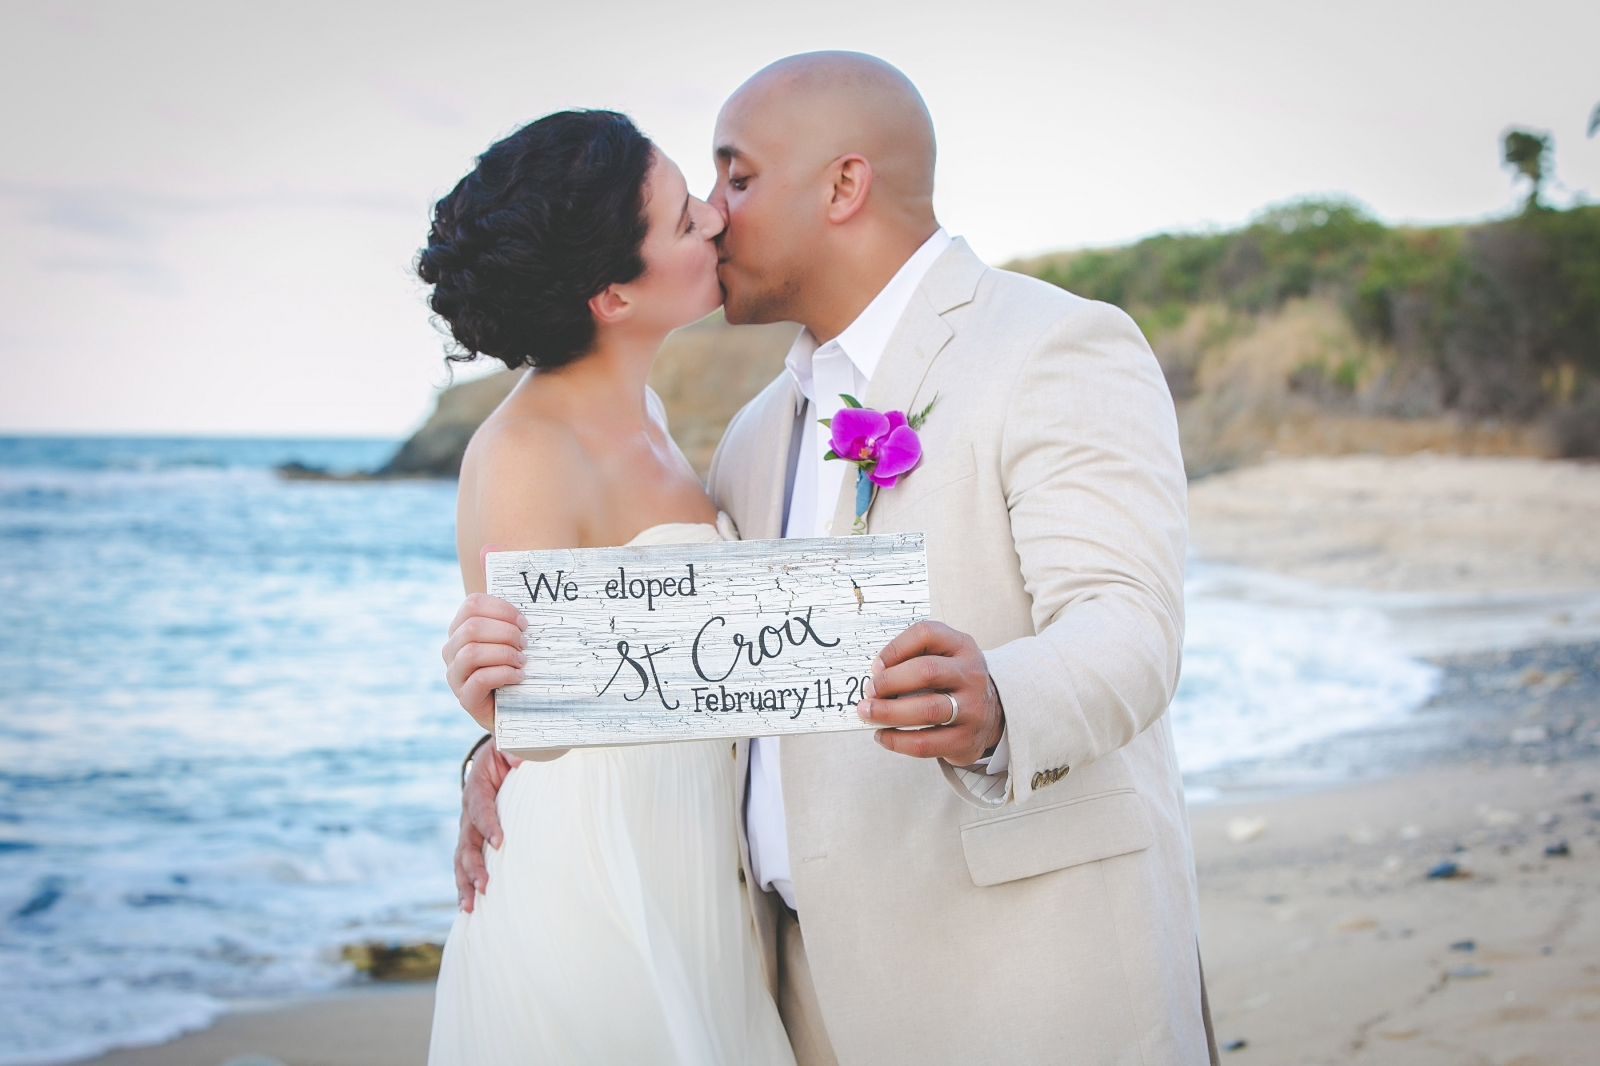 St. Croix wedding couple kissing on beach holding a wedding sign